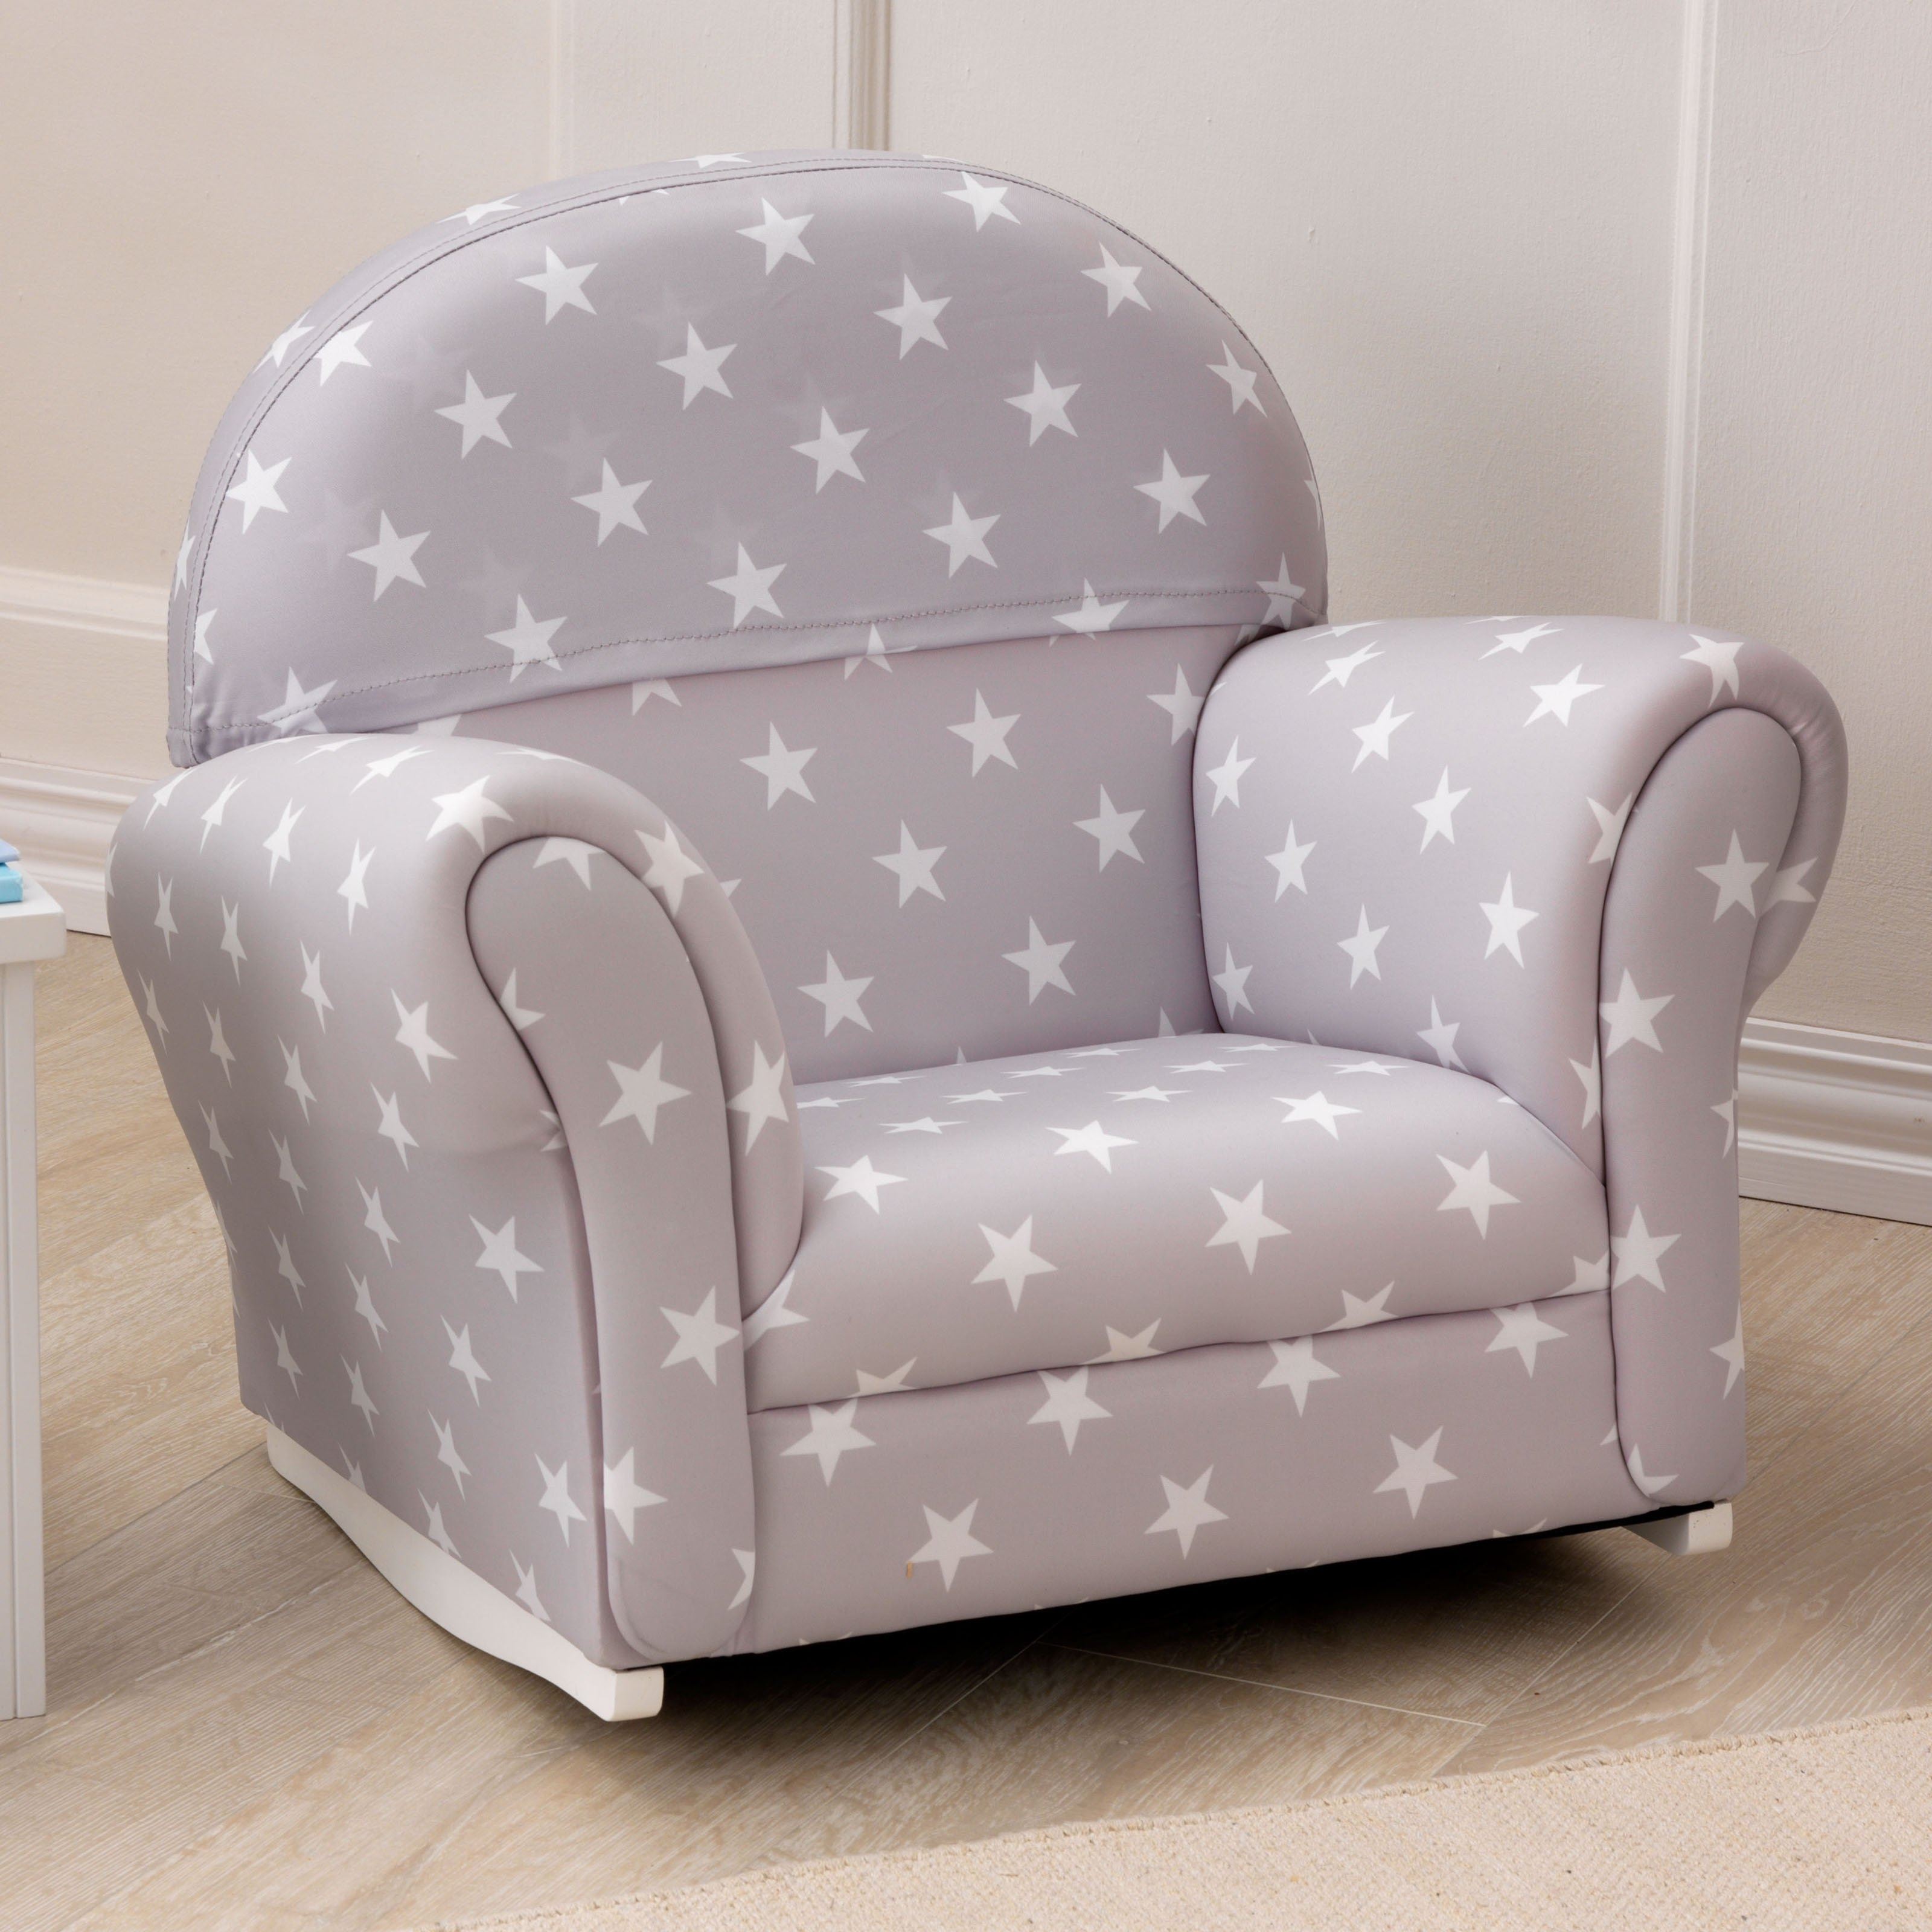 Widely Used Armchair : Ikea Kids Stool Kids Chairs Ikea Toddler Chair Ikea With Personalized Kids Chairs And Sofas (Gallery 6 of 20)